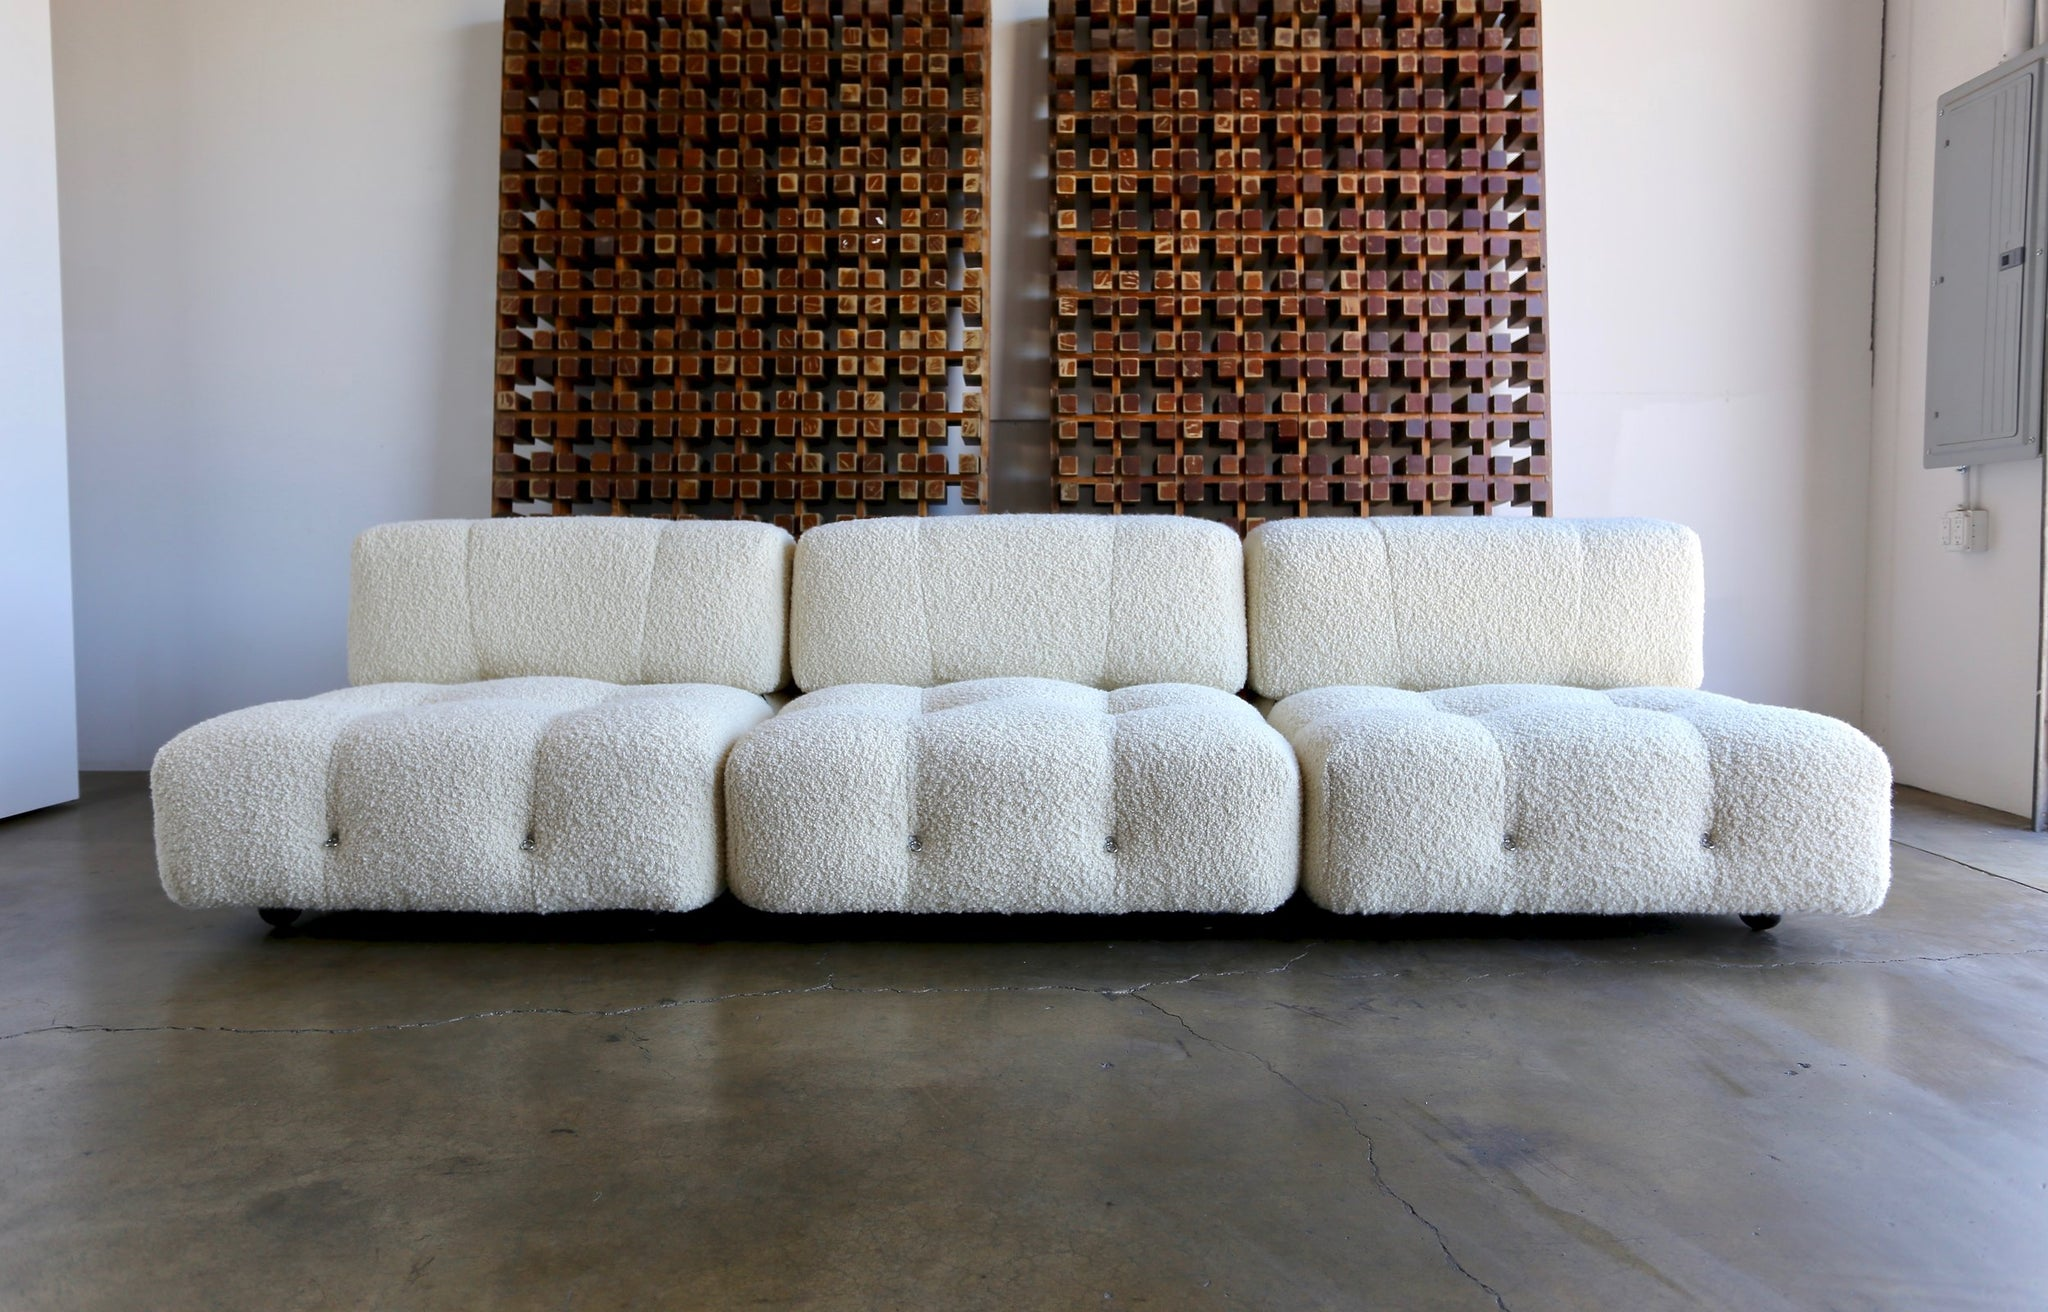 = SOLD = Mario Bellini Camaleonda Sofa For B&B Italia